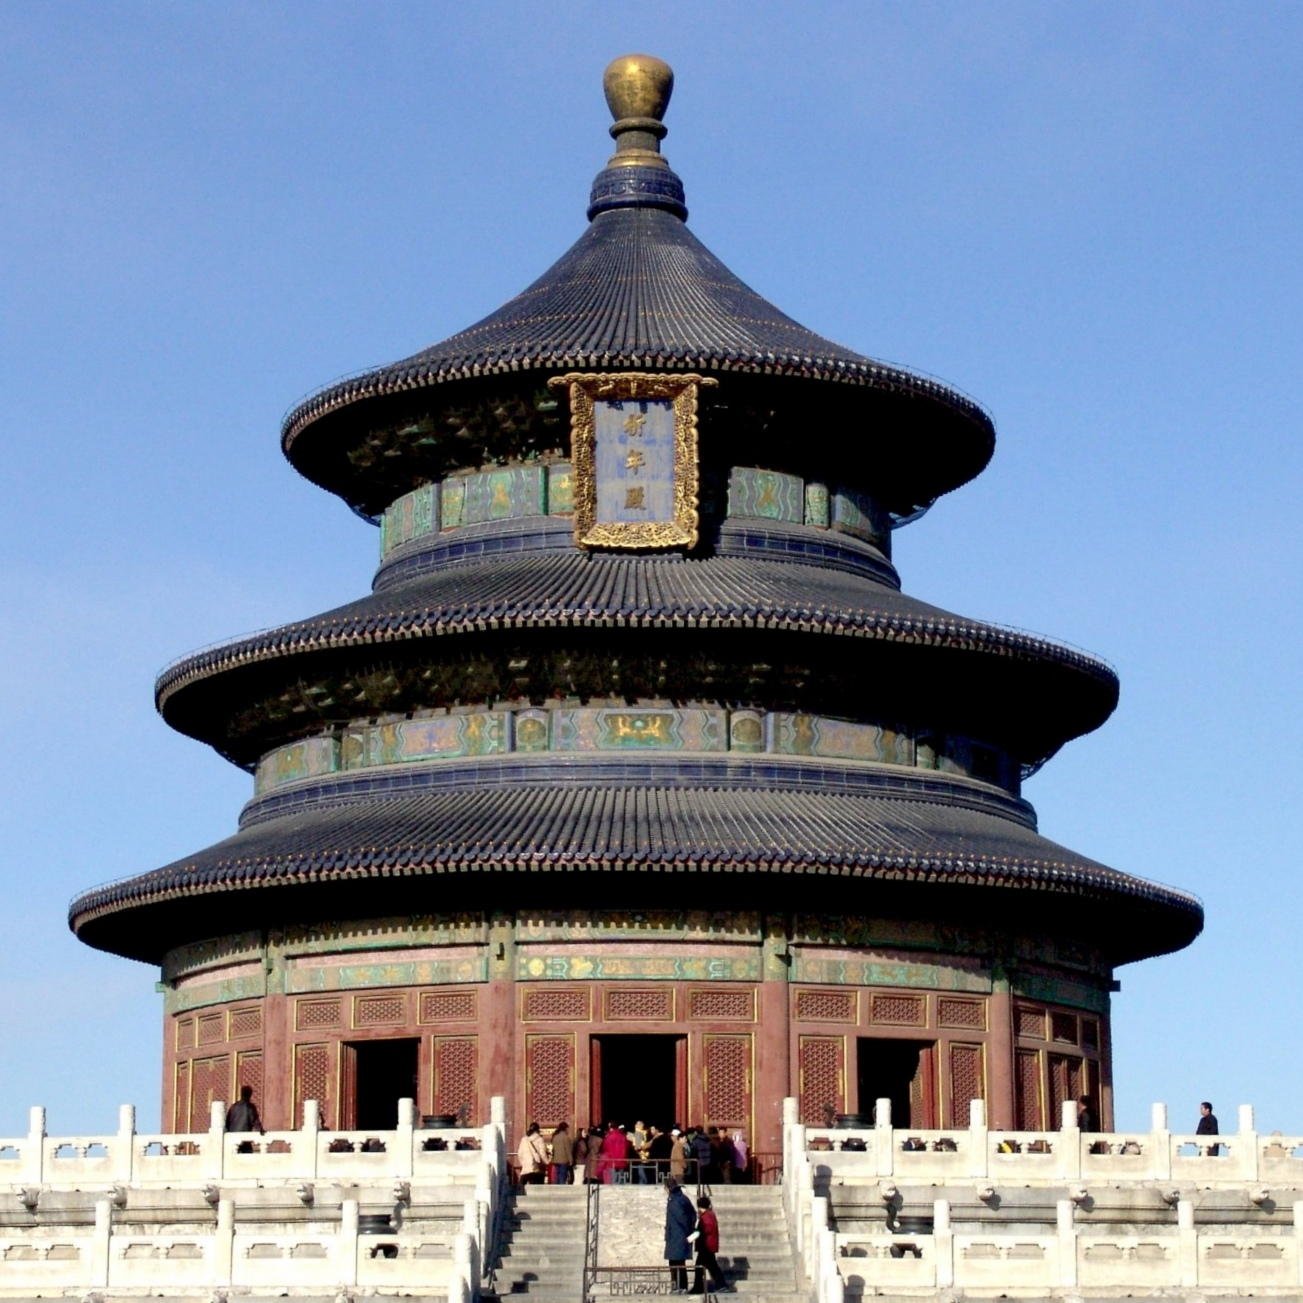 The Hall of Prayer for Good Harvest, Temple of Heaven, Beijng.